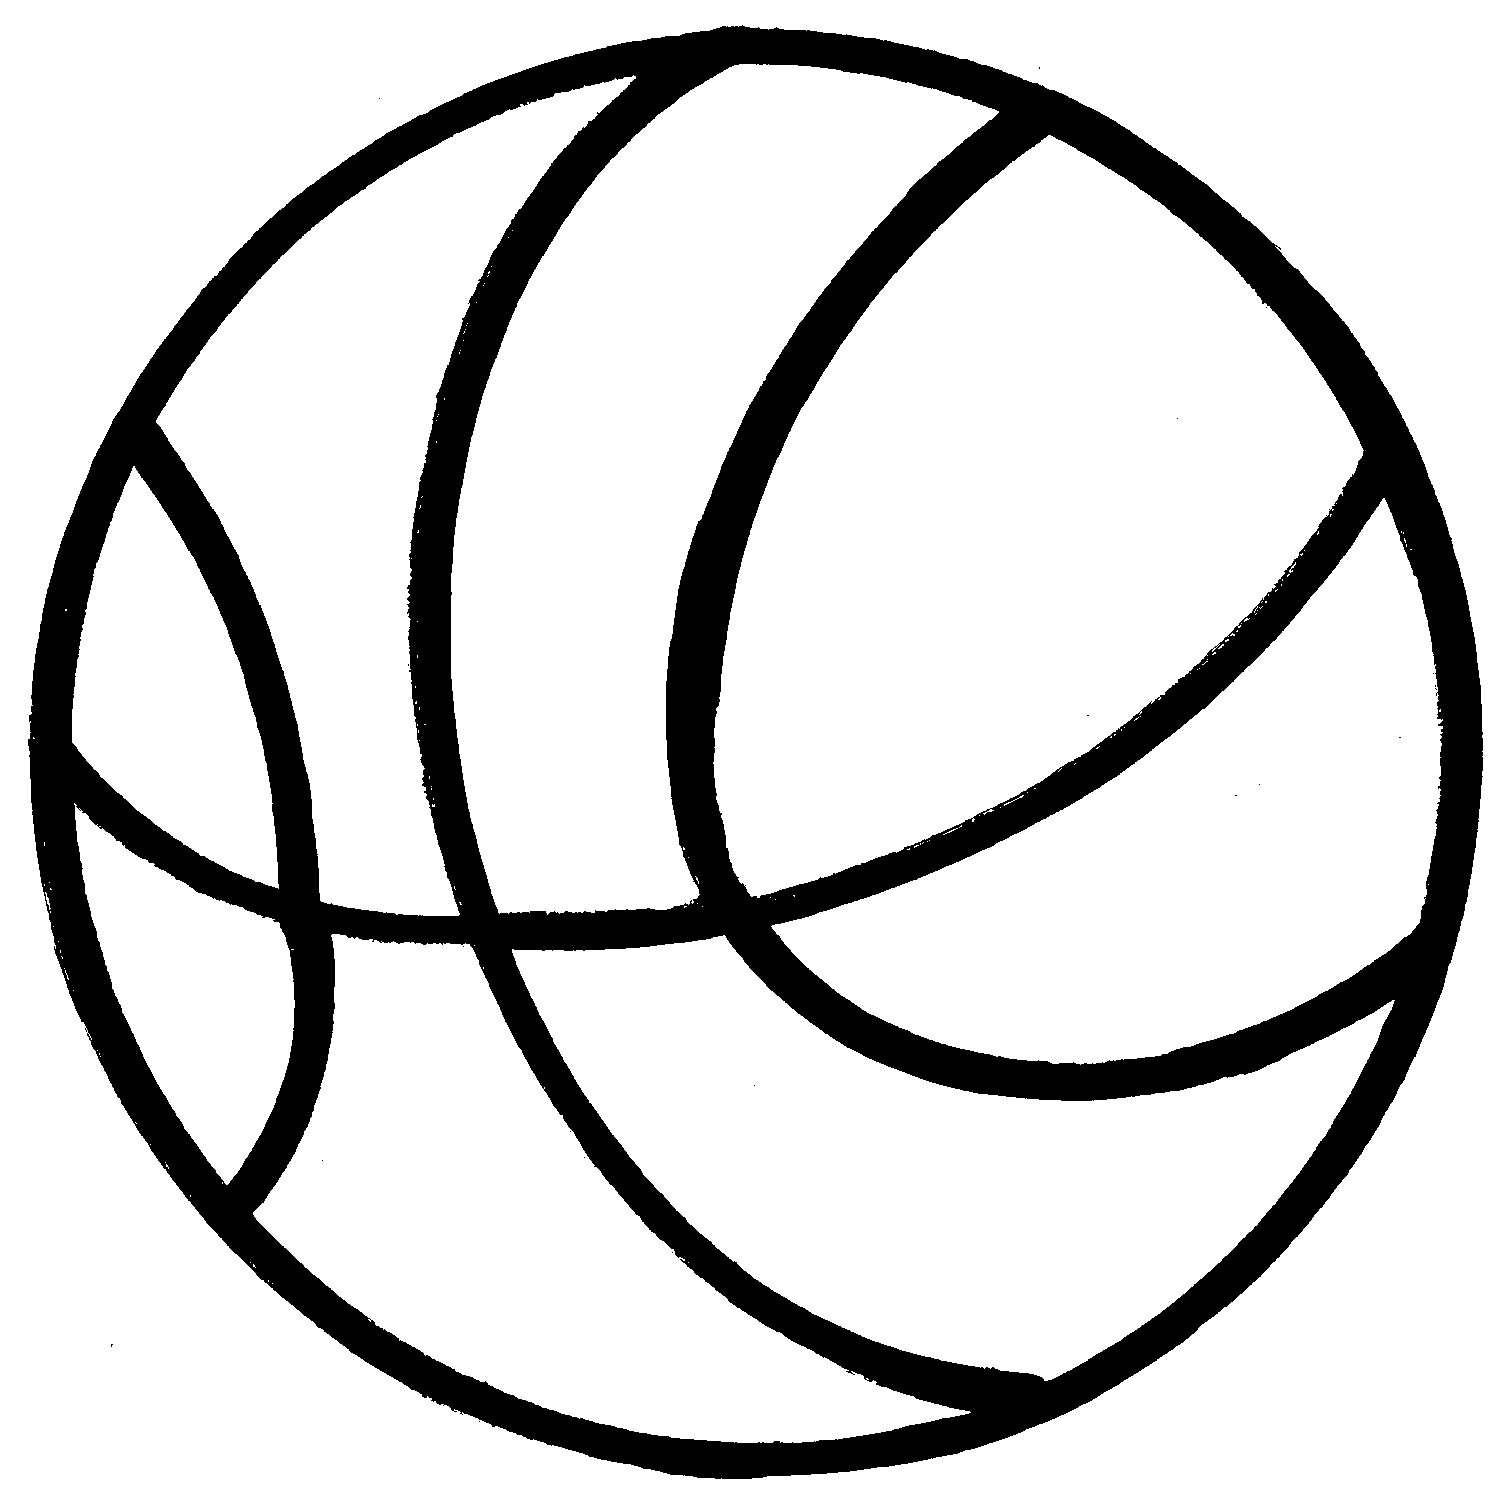 1509x1500 Basketball Clip Art Free Basketball Clipart To Use For Party Image